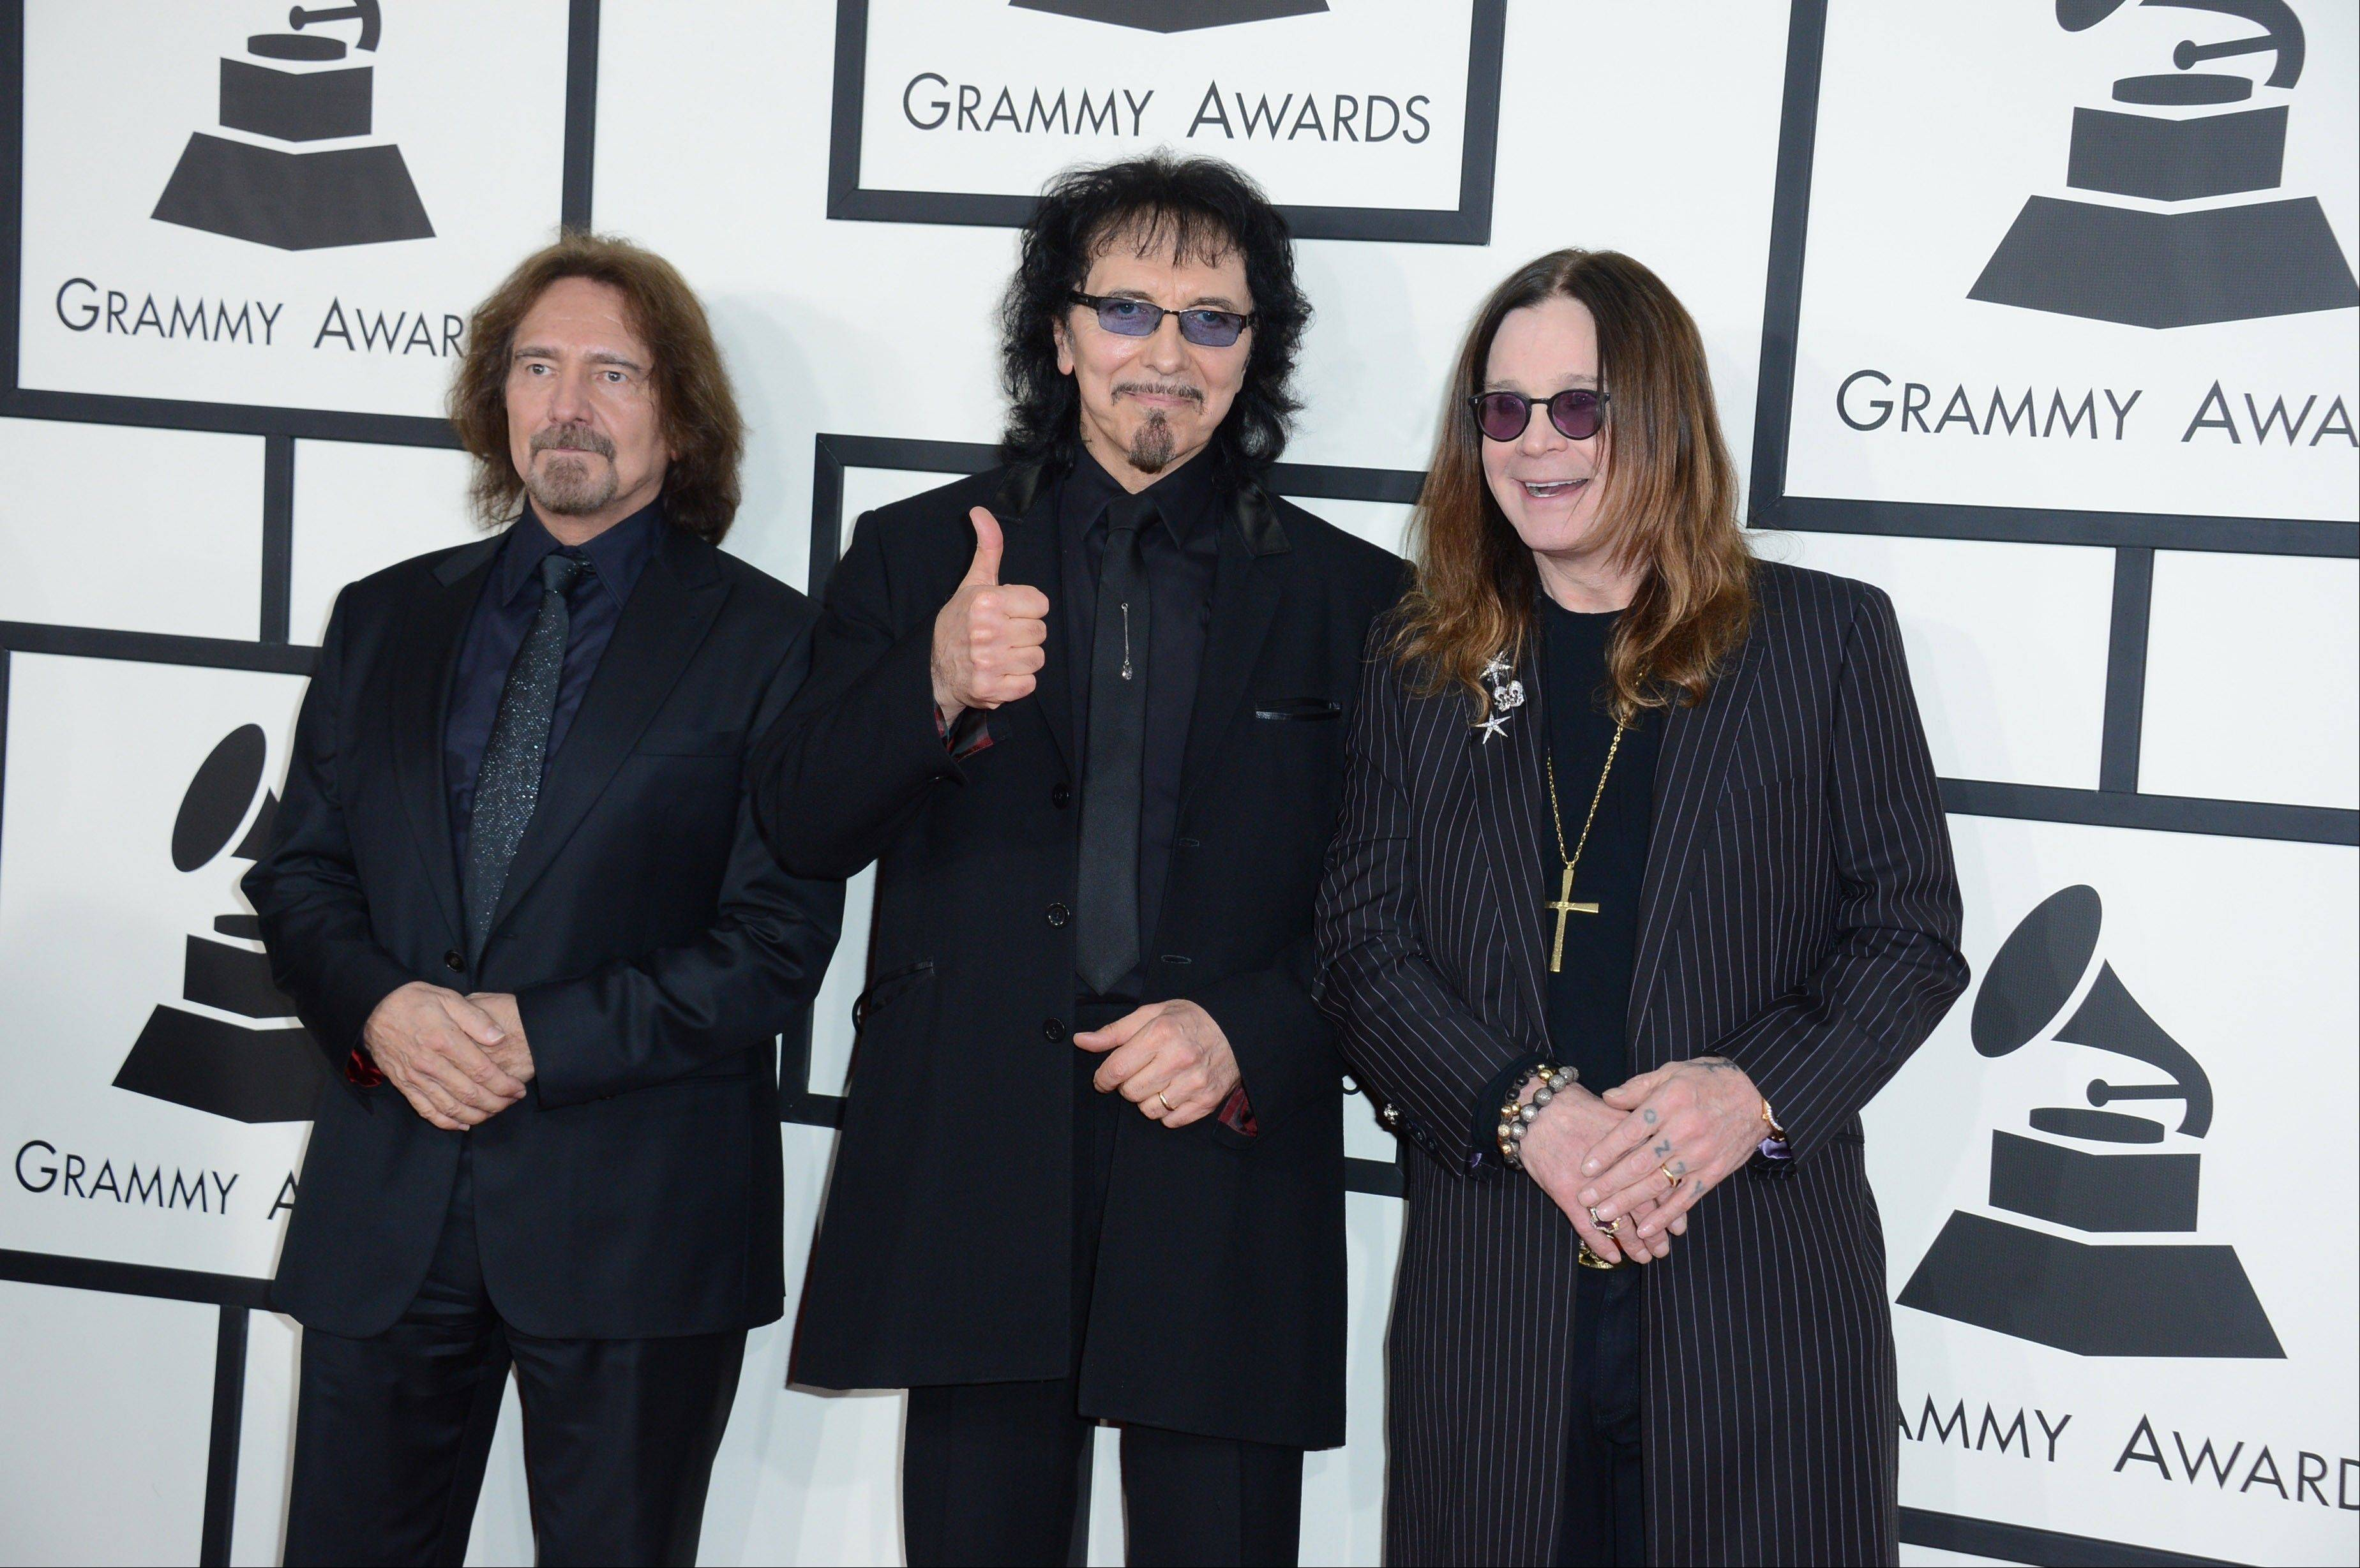 From left, Geezer Butler, Tony Iommi and Ozzy Osbourne of Black Sabbath arrive at the 56th annual Grammy Awards at Staples Center on Sunday in Los Angeles.